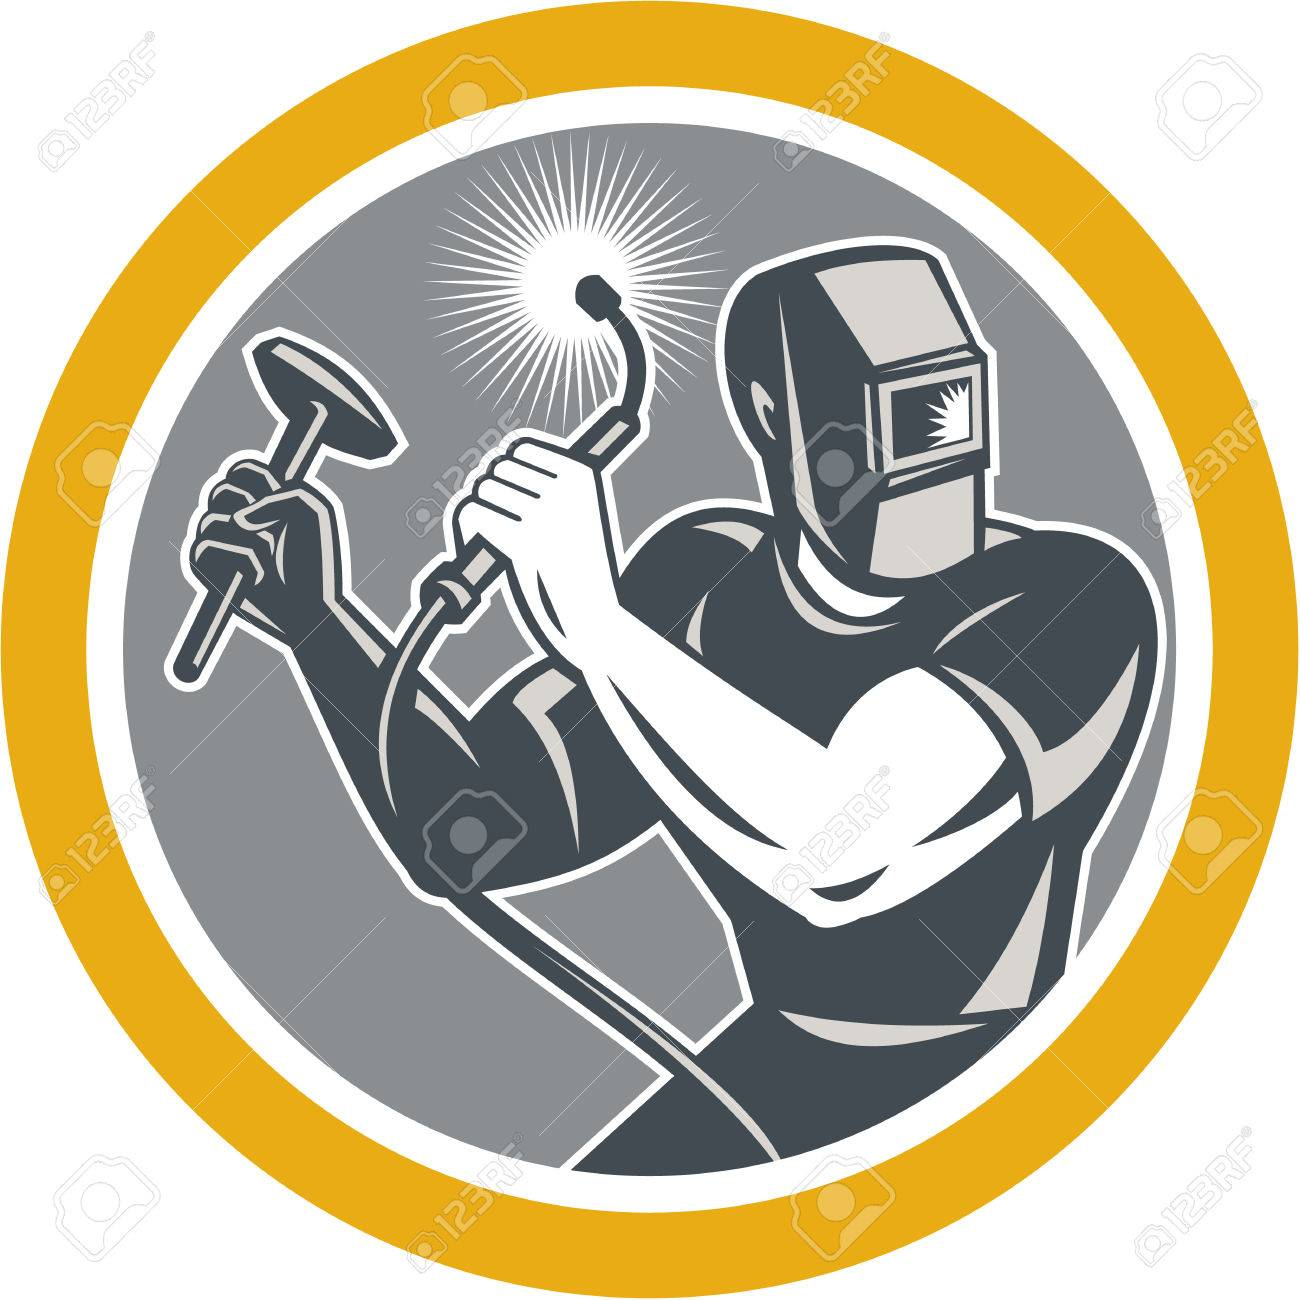 Illustration of welder worker working using welding torch holding hammer viewed from front set inside circle on isolated background done in retro style. Stock Vector - 26724886